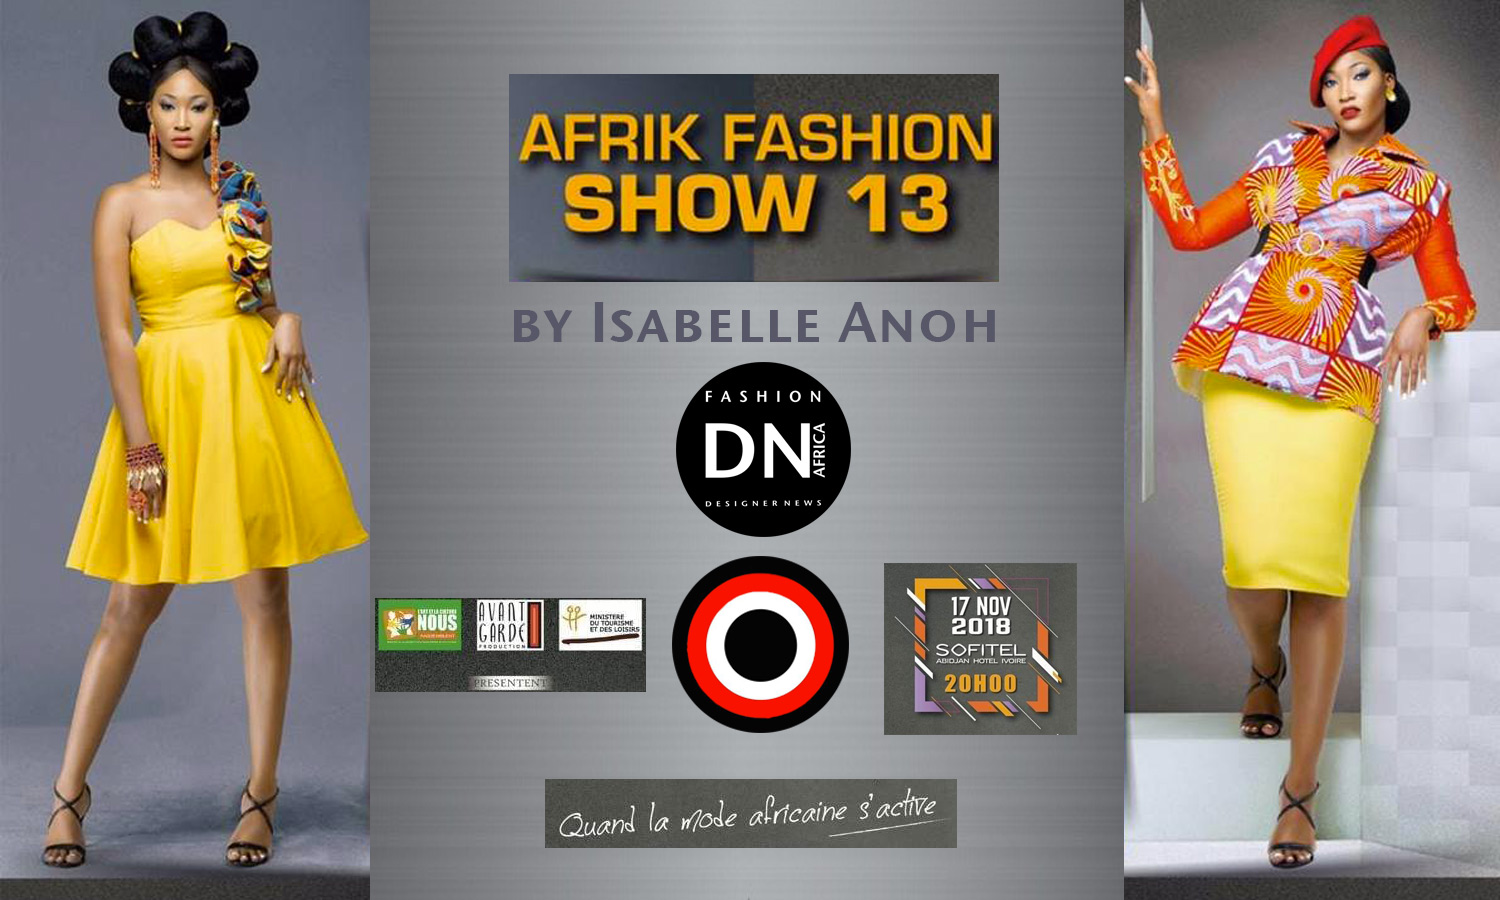 AFRICAN FASHION STYLE MAGAZINE - AFRIK FASHION SHOW 13 - Model Morgan Elkana - ORGANIZER ISABELLE ANOH - ABIDJAN IVORY COAST - Official Media Partner DN AFRICA -STUDIO 24 NIGERIA - STUDIO 24 INTERNATIONAL - Ifeanyi Christopher Oputa MD AND CEO OF COLVI LIMITED AND STUDIO 24